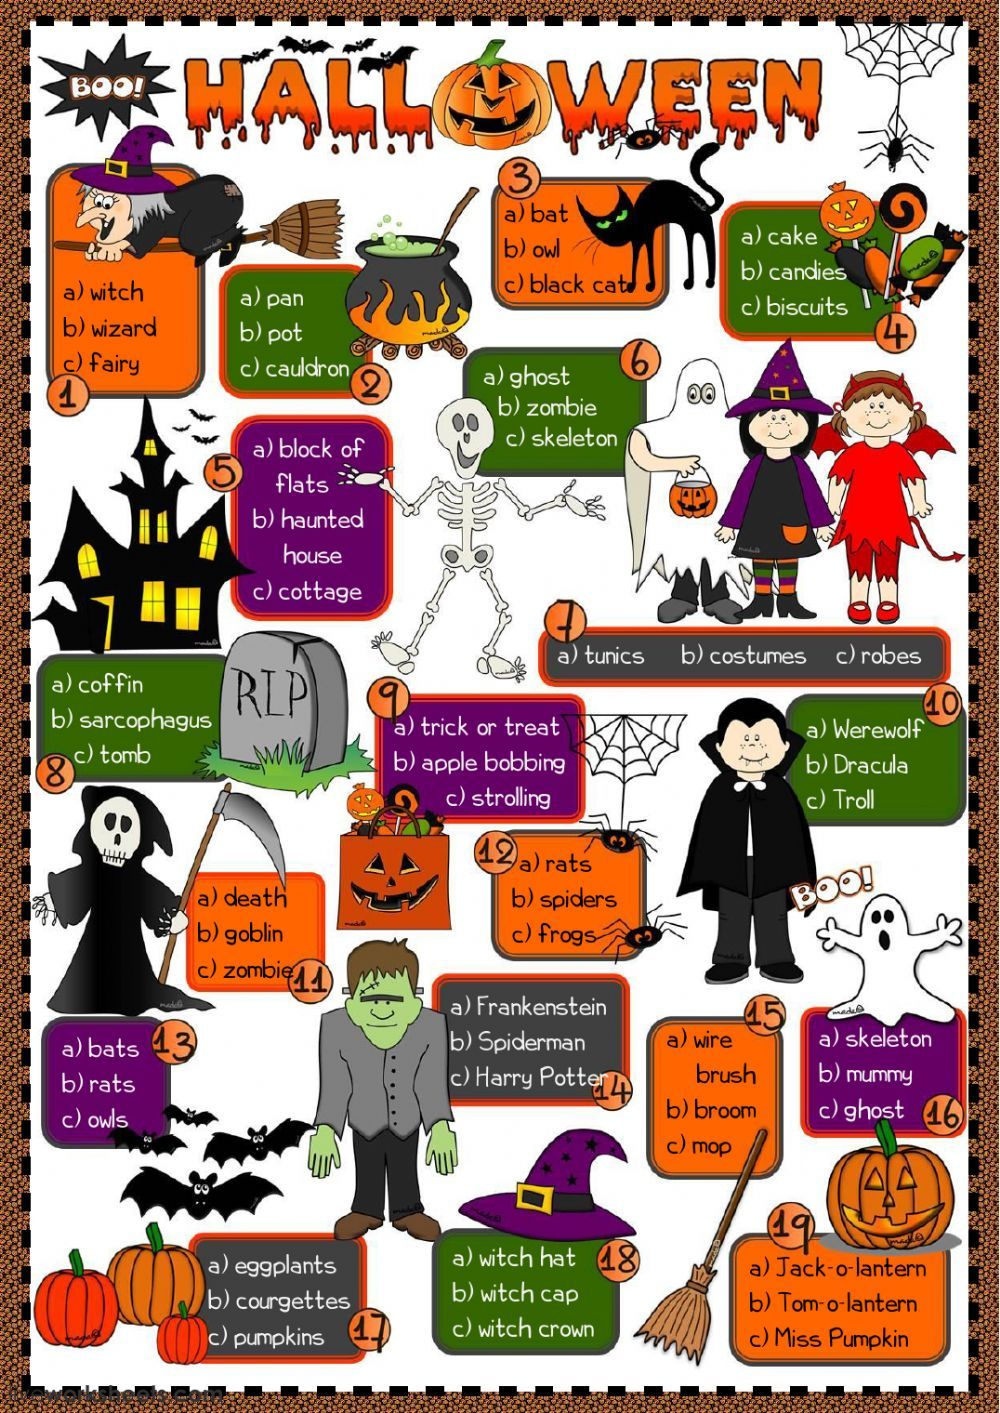 Halloween Interactive And Downloadable Worksheet You Can Do The Exercises Online Or Download The Wor Halloween Vocabulary Halloween Worksheets Halloween Words [ 1413 x 1000 Pixel ]